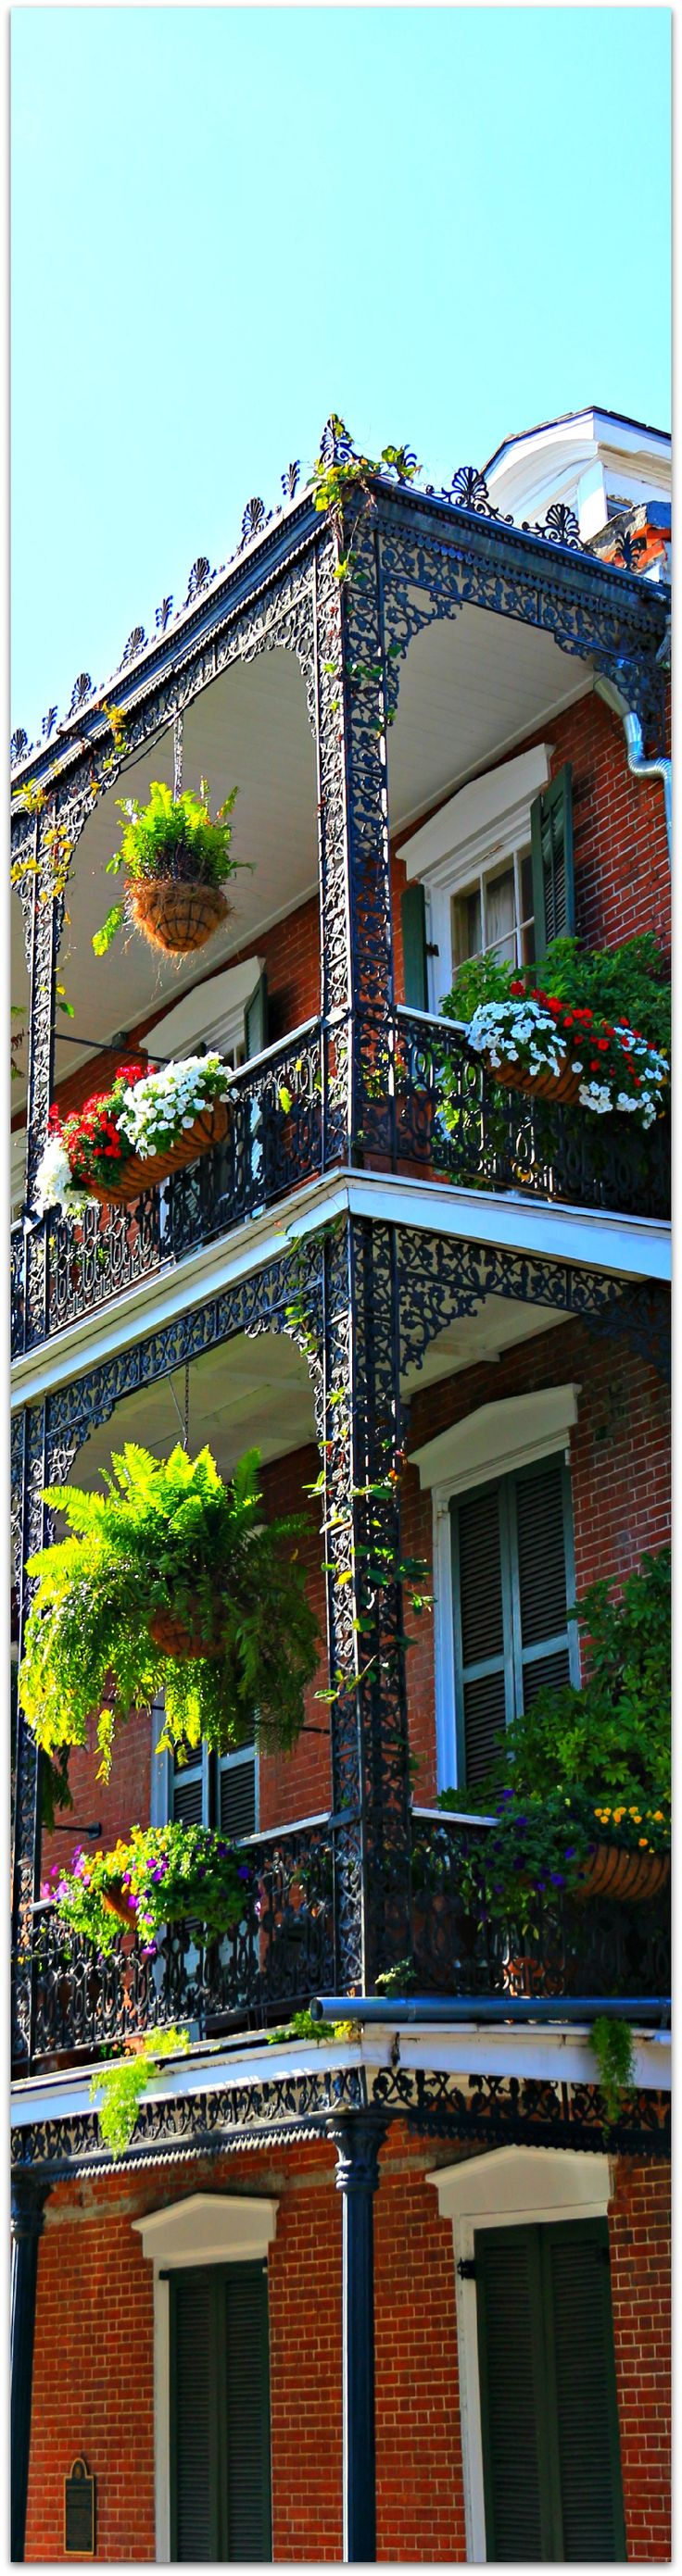 Beautiful close-up of the wrought-iron balconies that make the French Quarter so picturesque!  New Orleans, LA